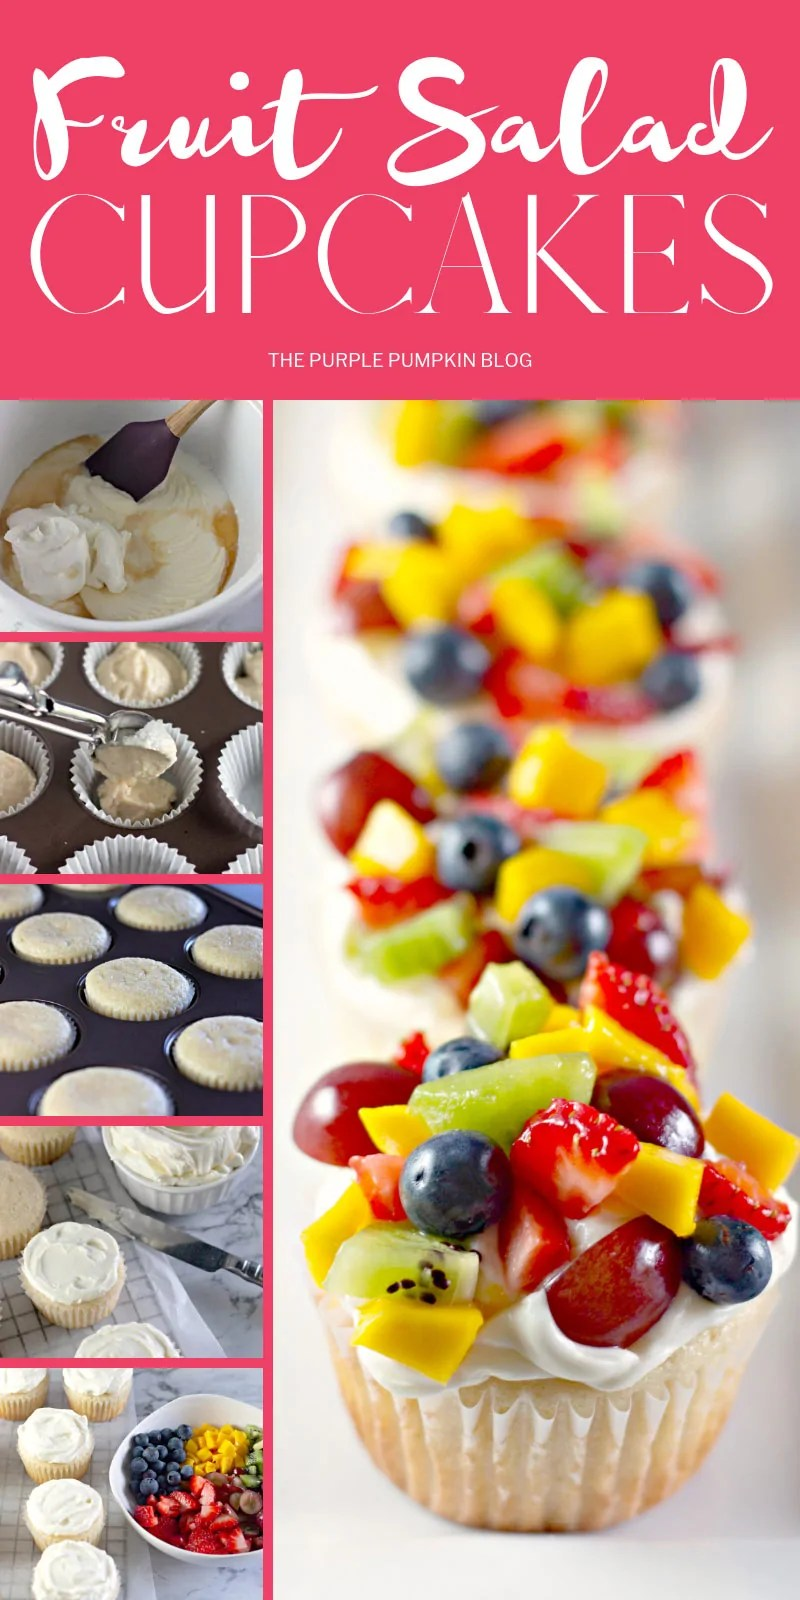 Step-by-step photos demonstrating how to make fresh fruit cupcakes